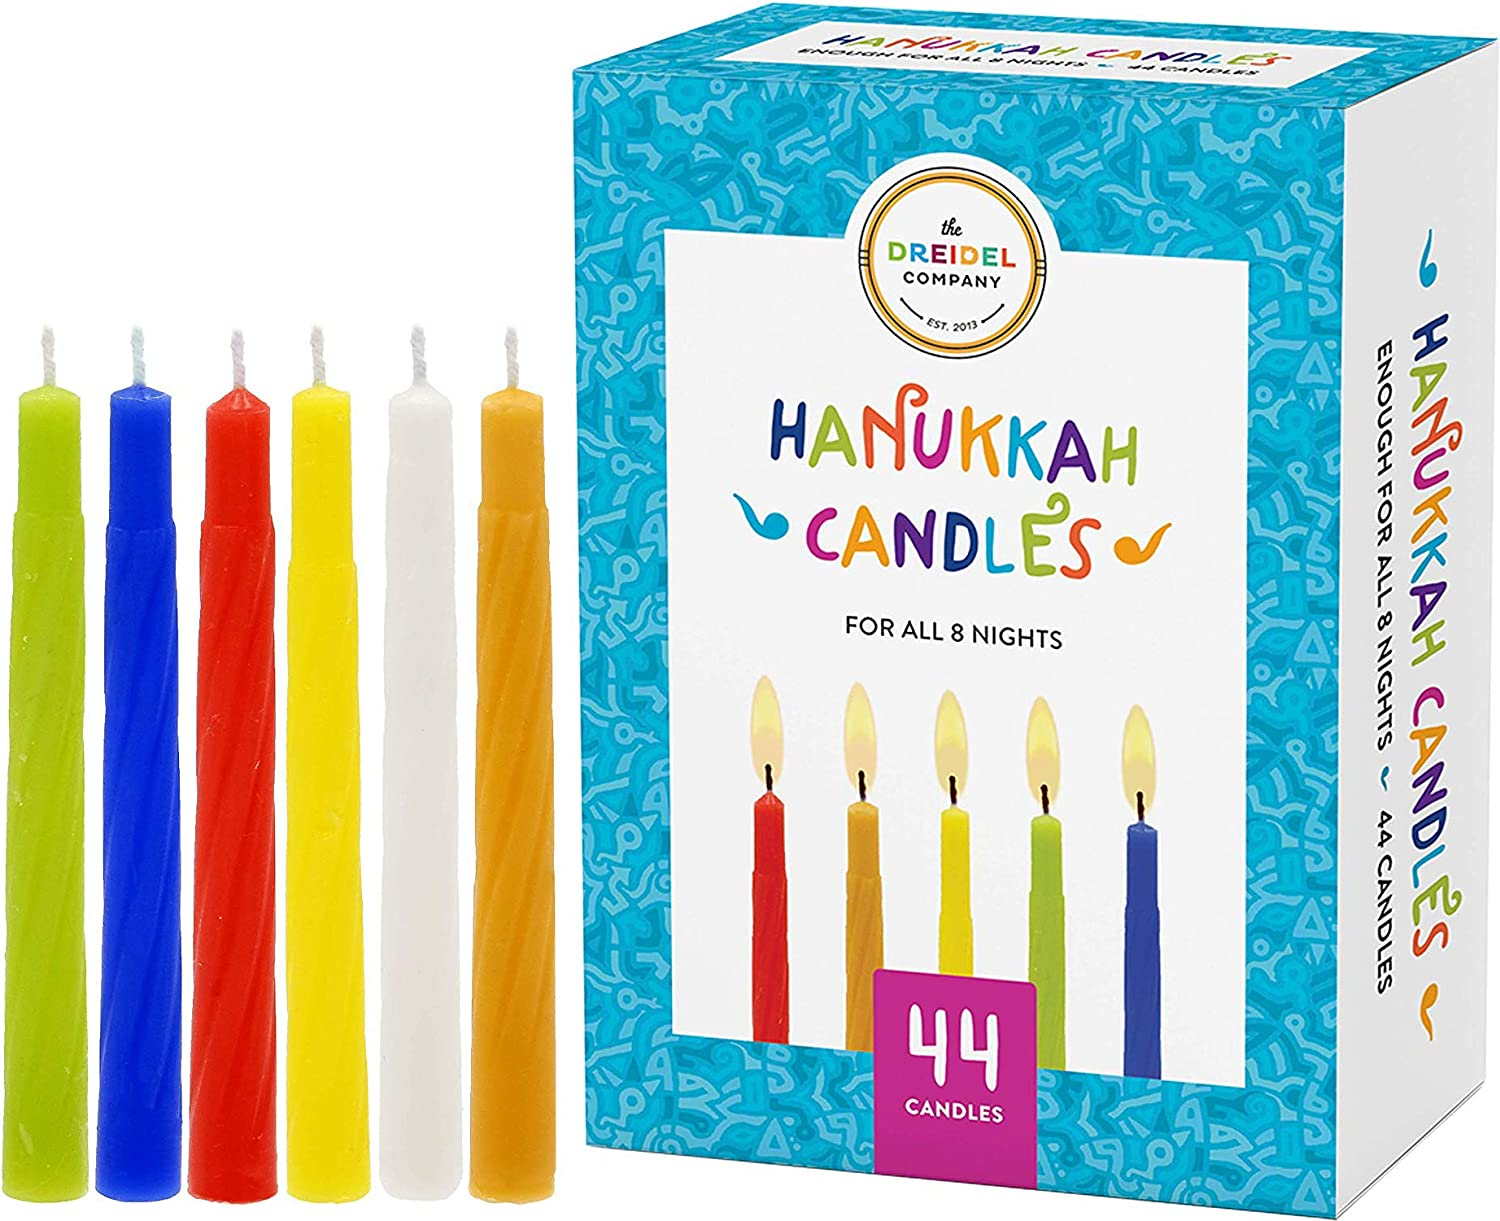 The Dreidel Company Menorah Chanukah 44 Candles Be super welcome Colorful Max 51% OFF